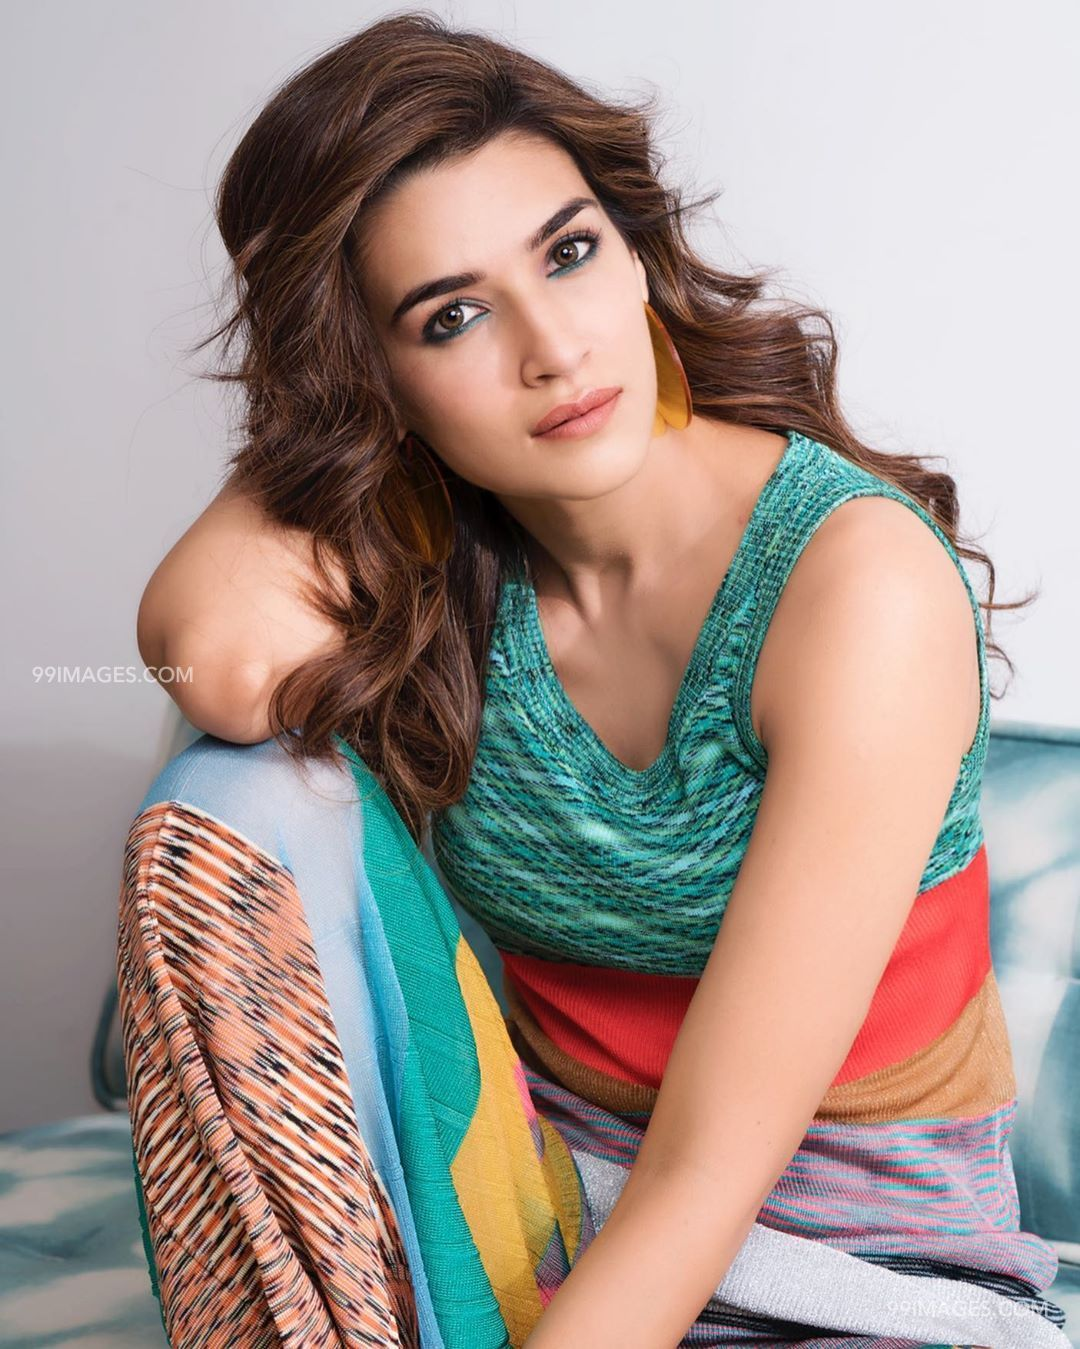 Kriti Sanon Hot HD Photos & Wallpapers for mobile (1080p) (36074) - Kriti Sanon